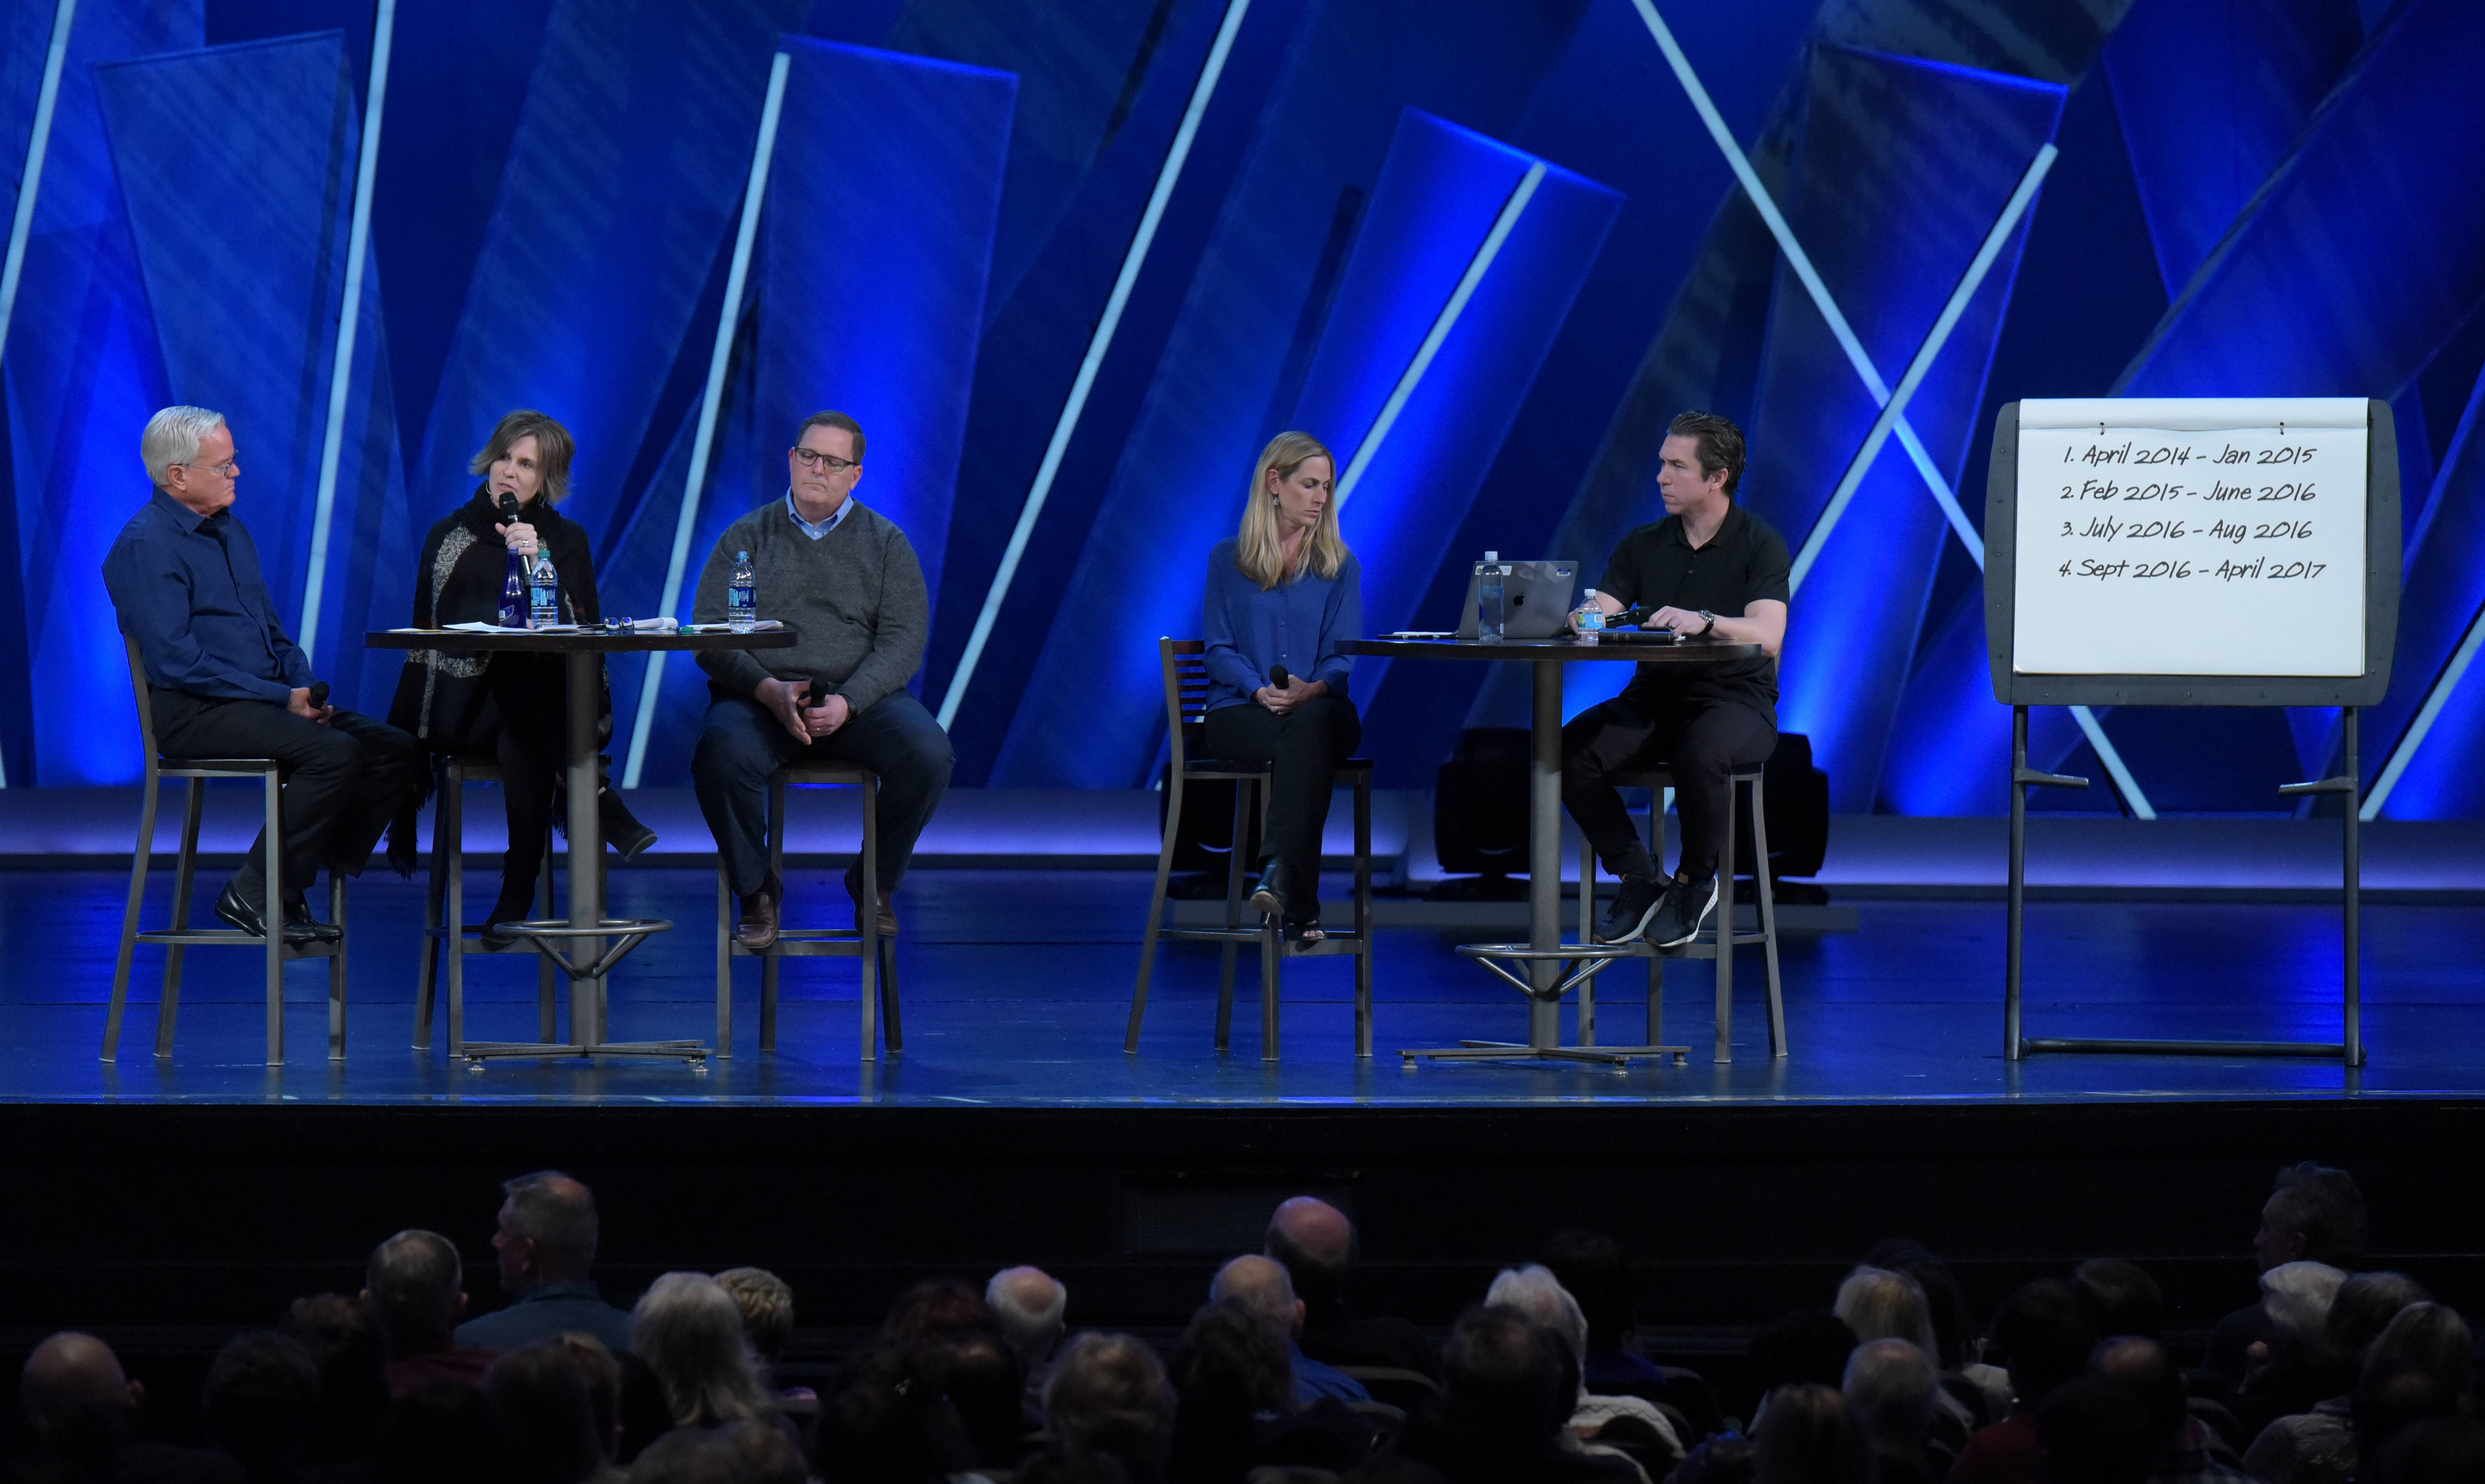 The Rev. Bill Hybels; Pam Orr, Chair of Willow Creek Elder Board; Rob Campbell, Lead Pastor Willow Chicago; Heather Larson, Executive Pastor; and Steve Carter, Teaching Pastor; speak during a Willow Creek Community Church family conversation on Monday to discuss the investigation of misconduct accusations against the Rev. Hybel.